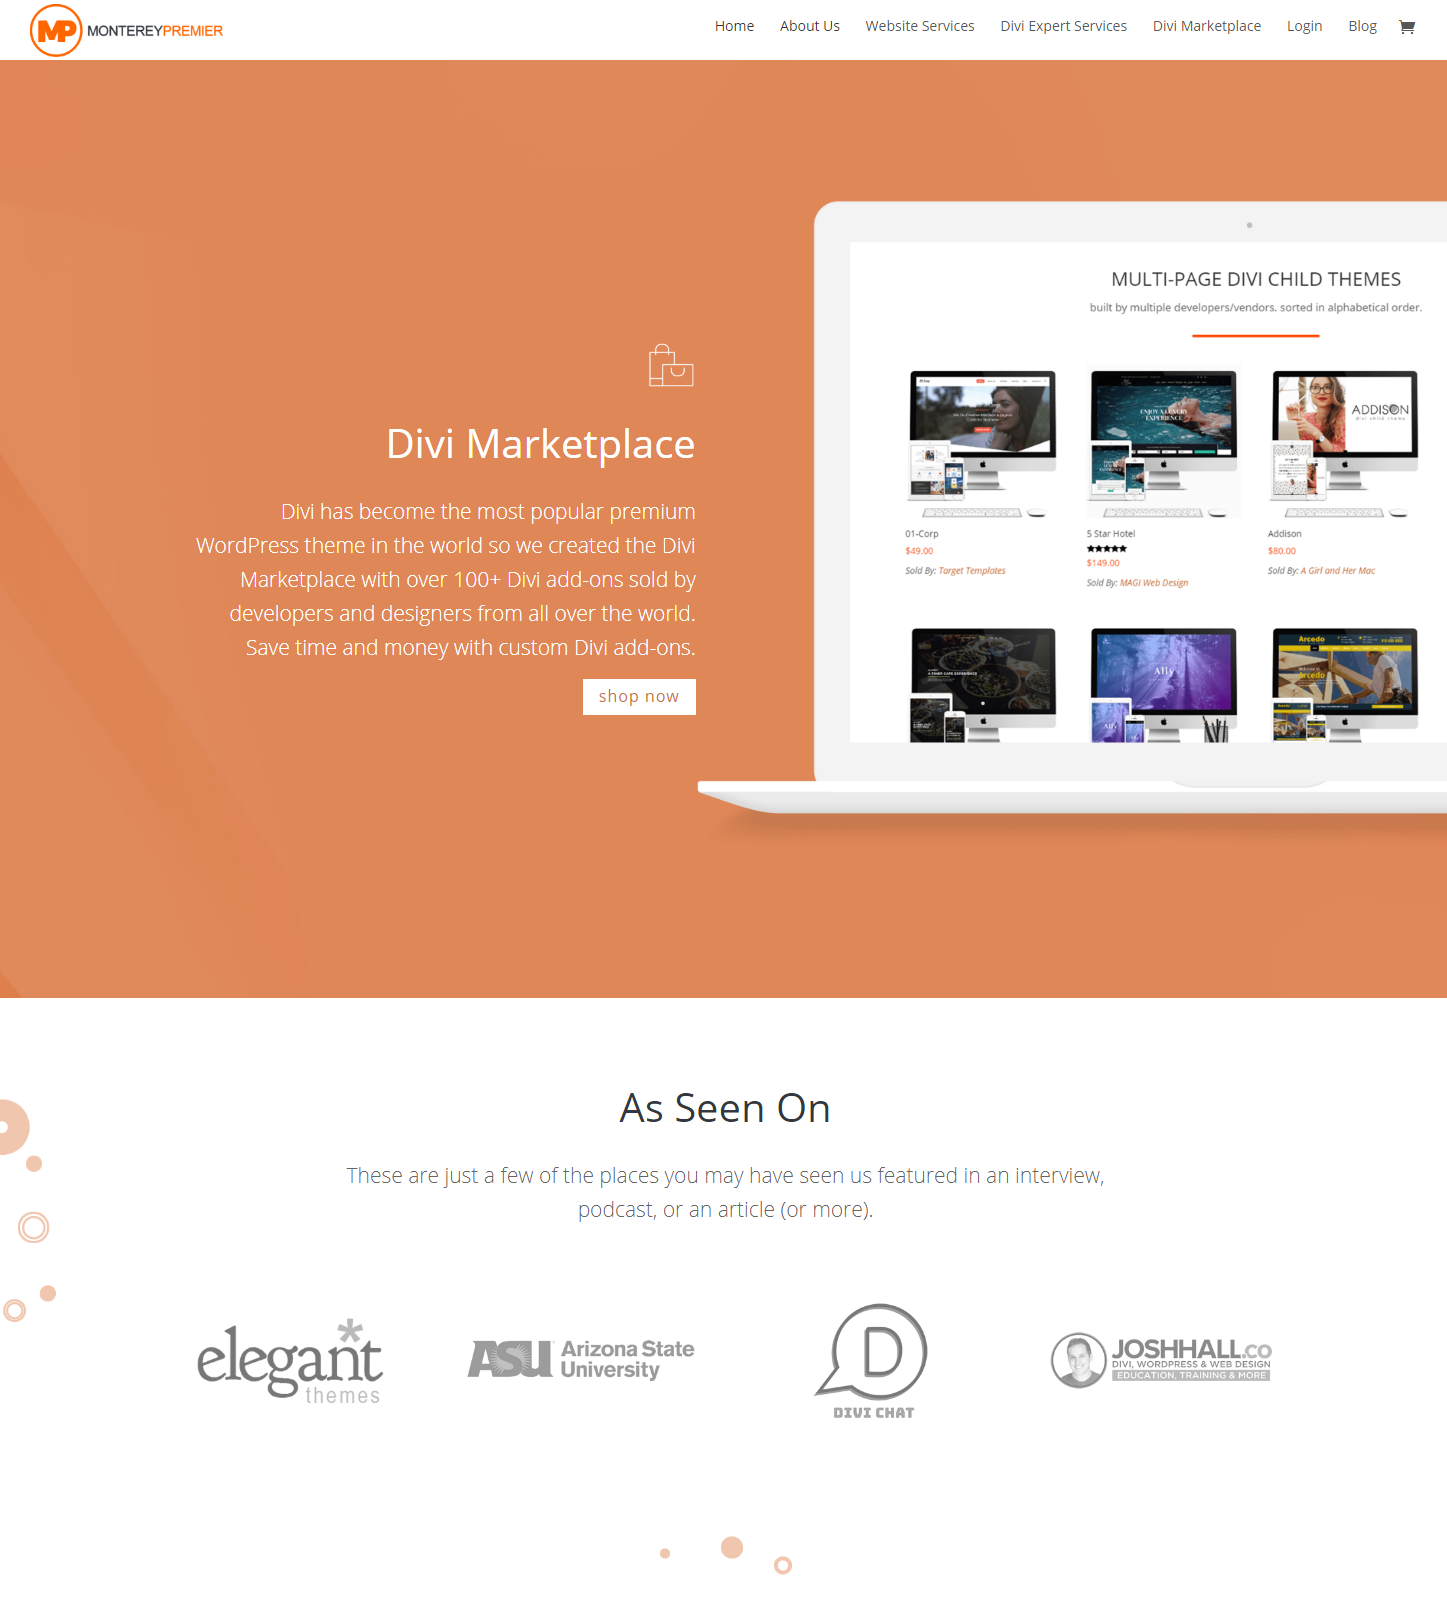 Monterey Premier - Explain what The Divi Marketplace Is And Who It Is For (a)